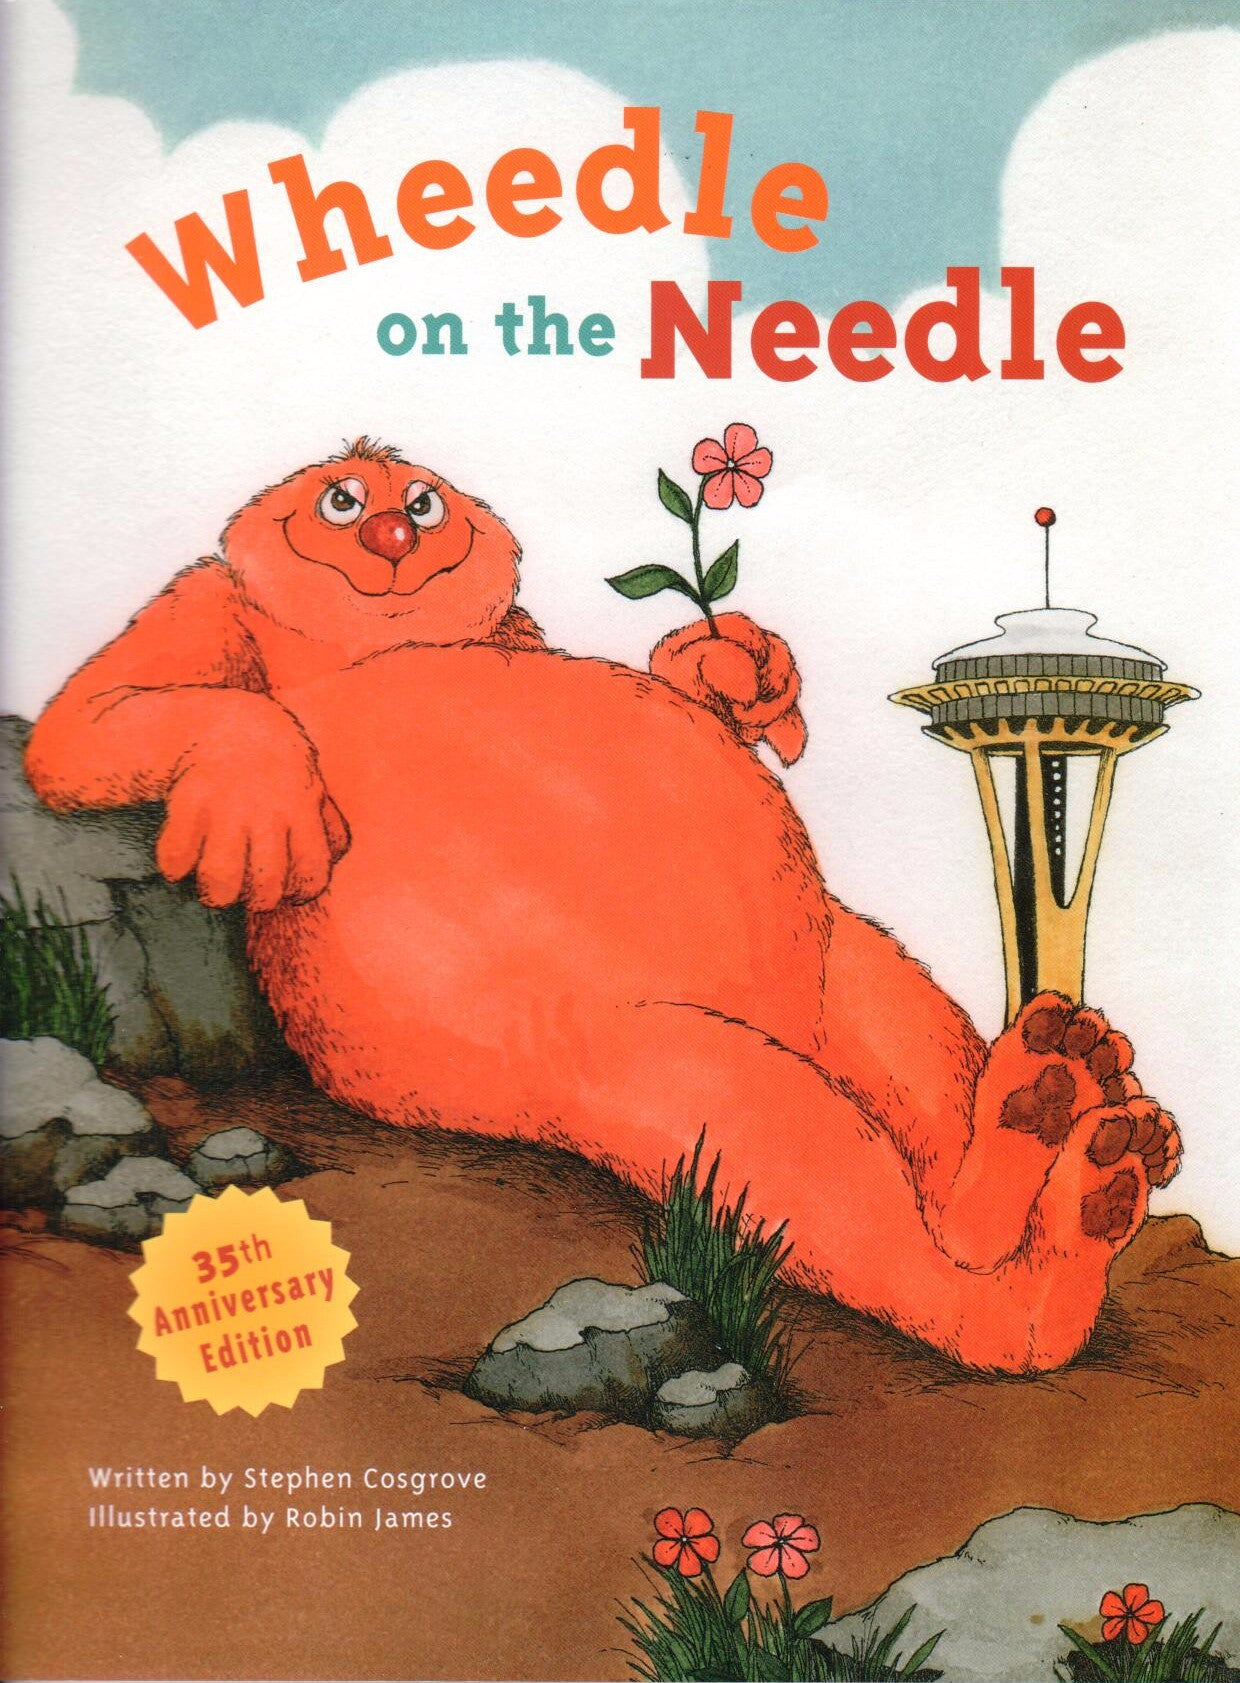 Wheedle on the Needle, by Stephen Cosgrove - Washington State Historical Society